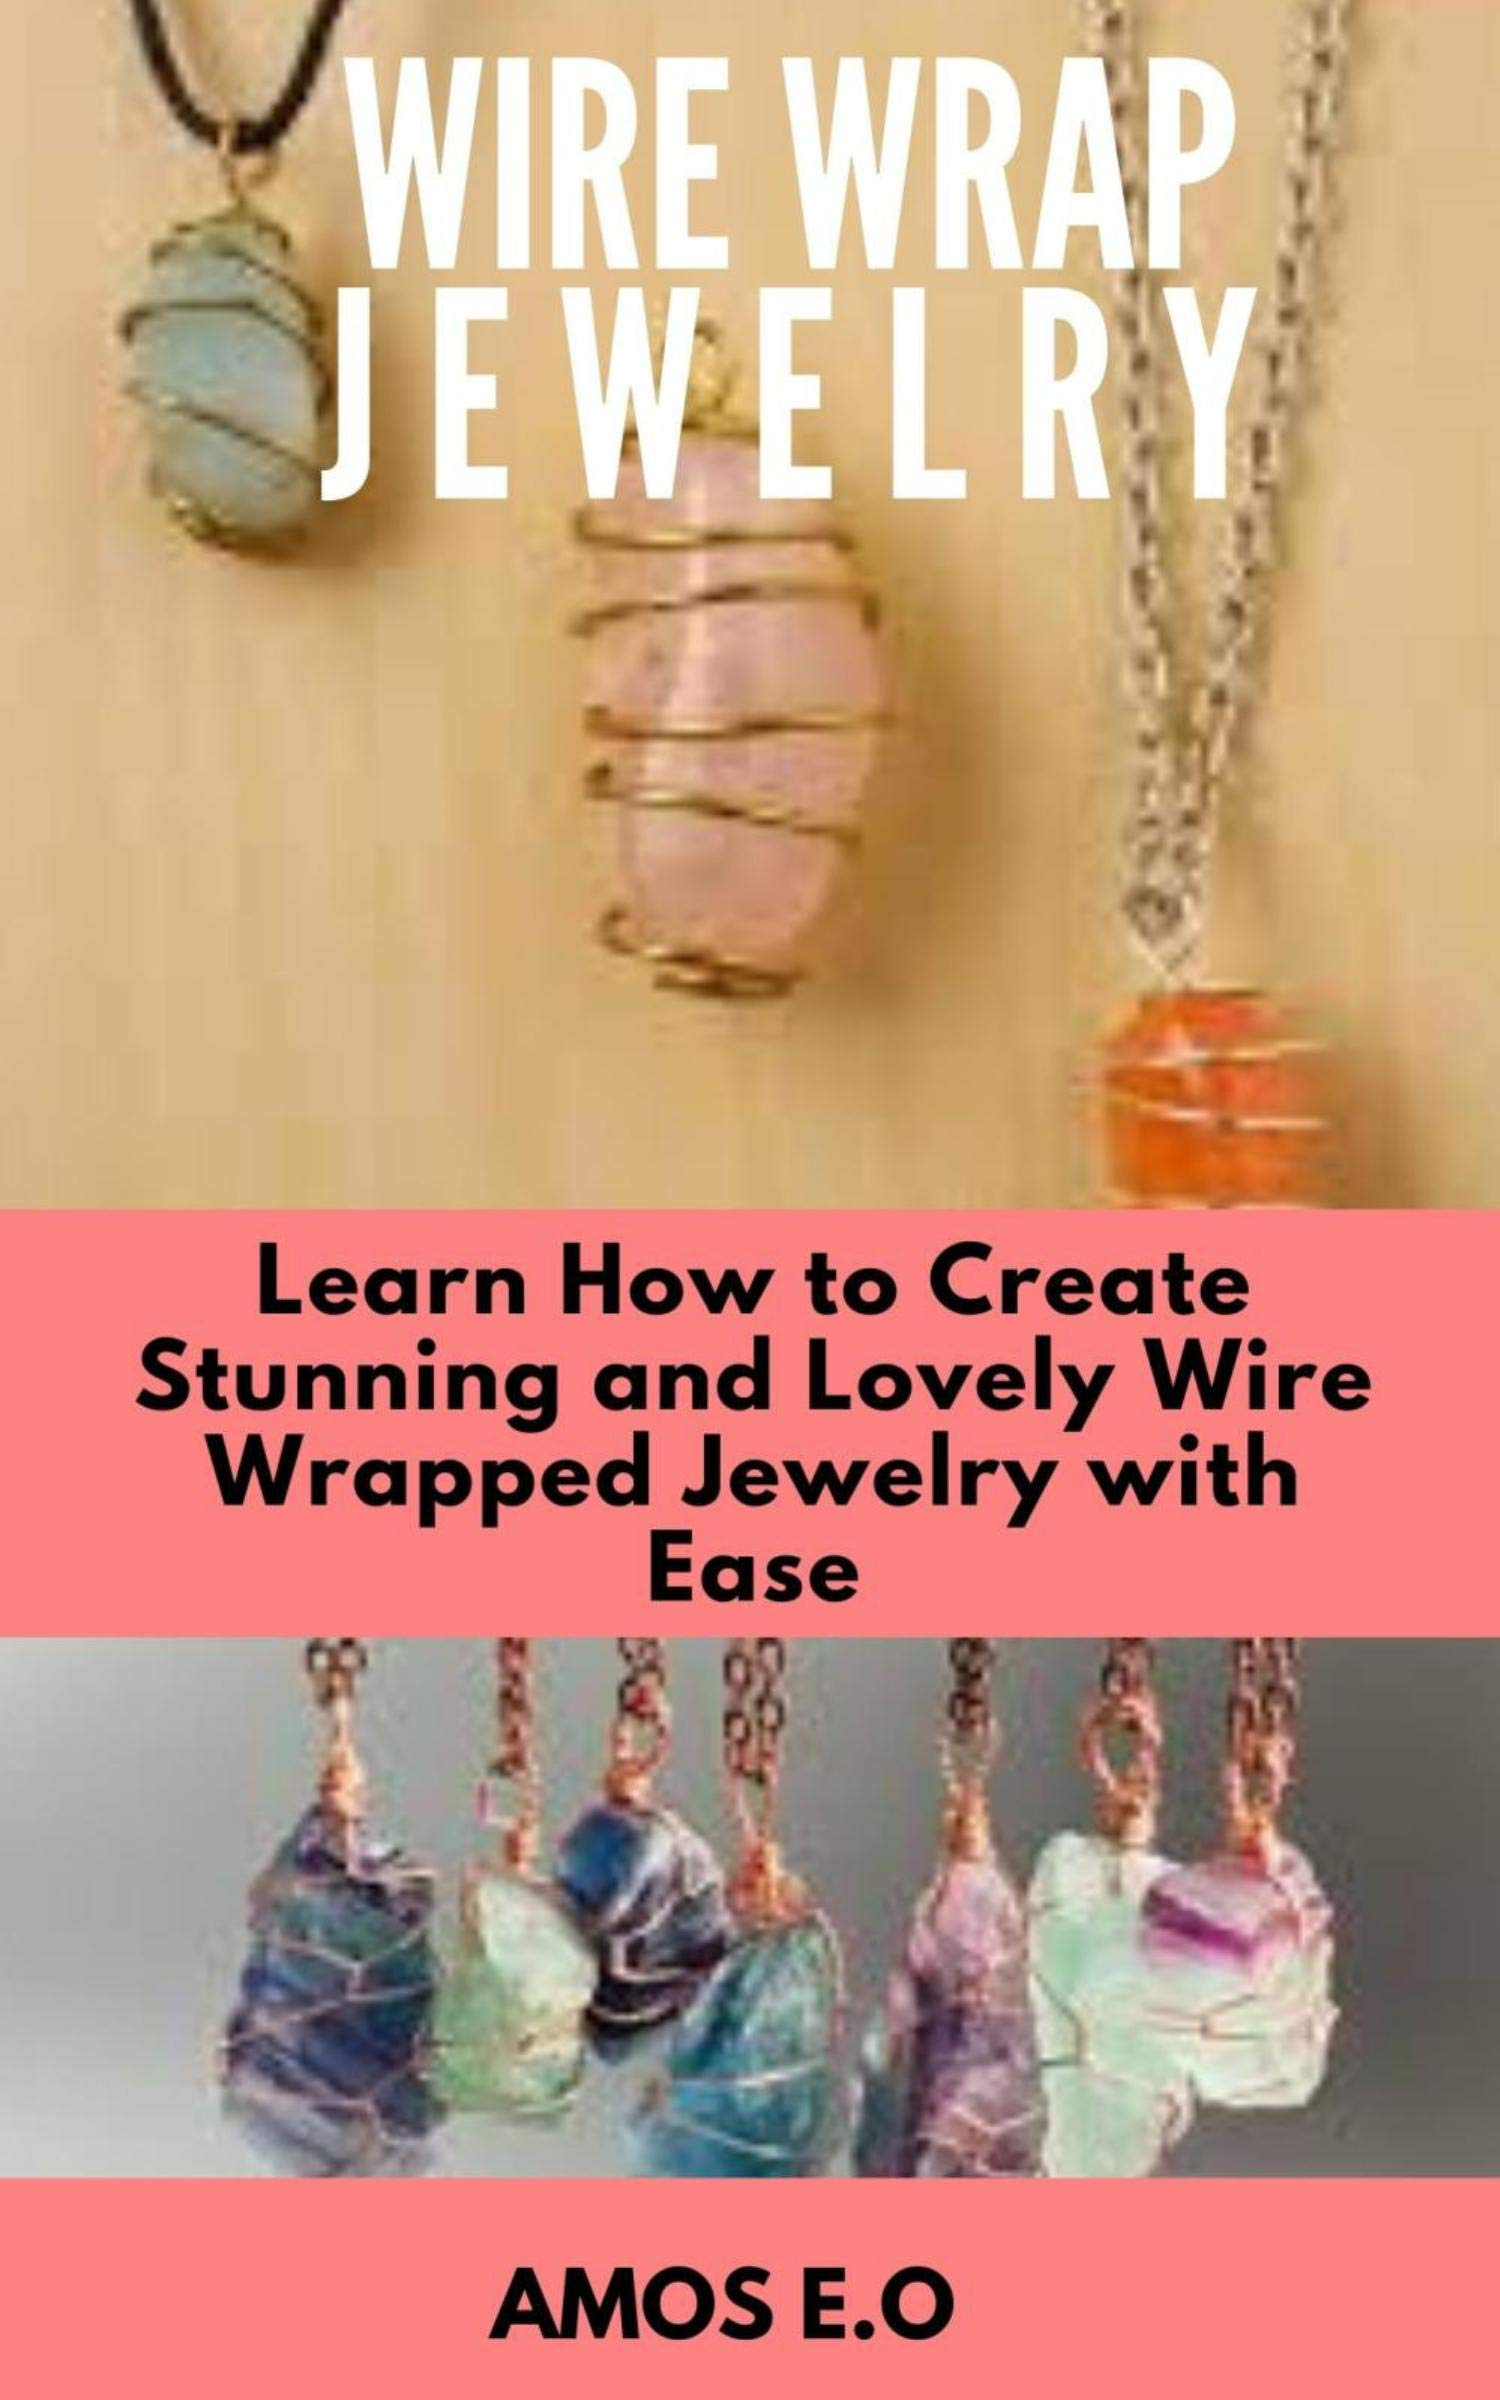 WIRE WRAP JEWELRY : Learn How to Create Stunning and Lovely Wire Wrapped Jewelry with Ease